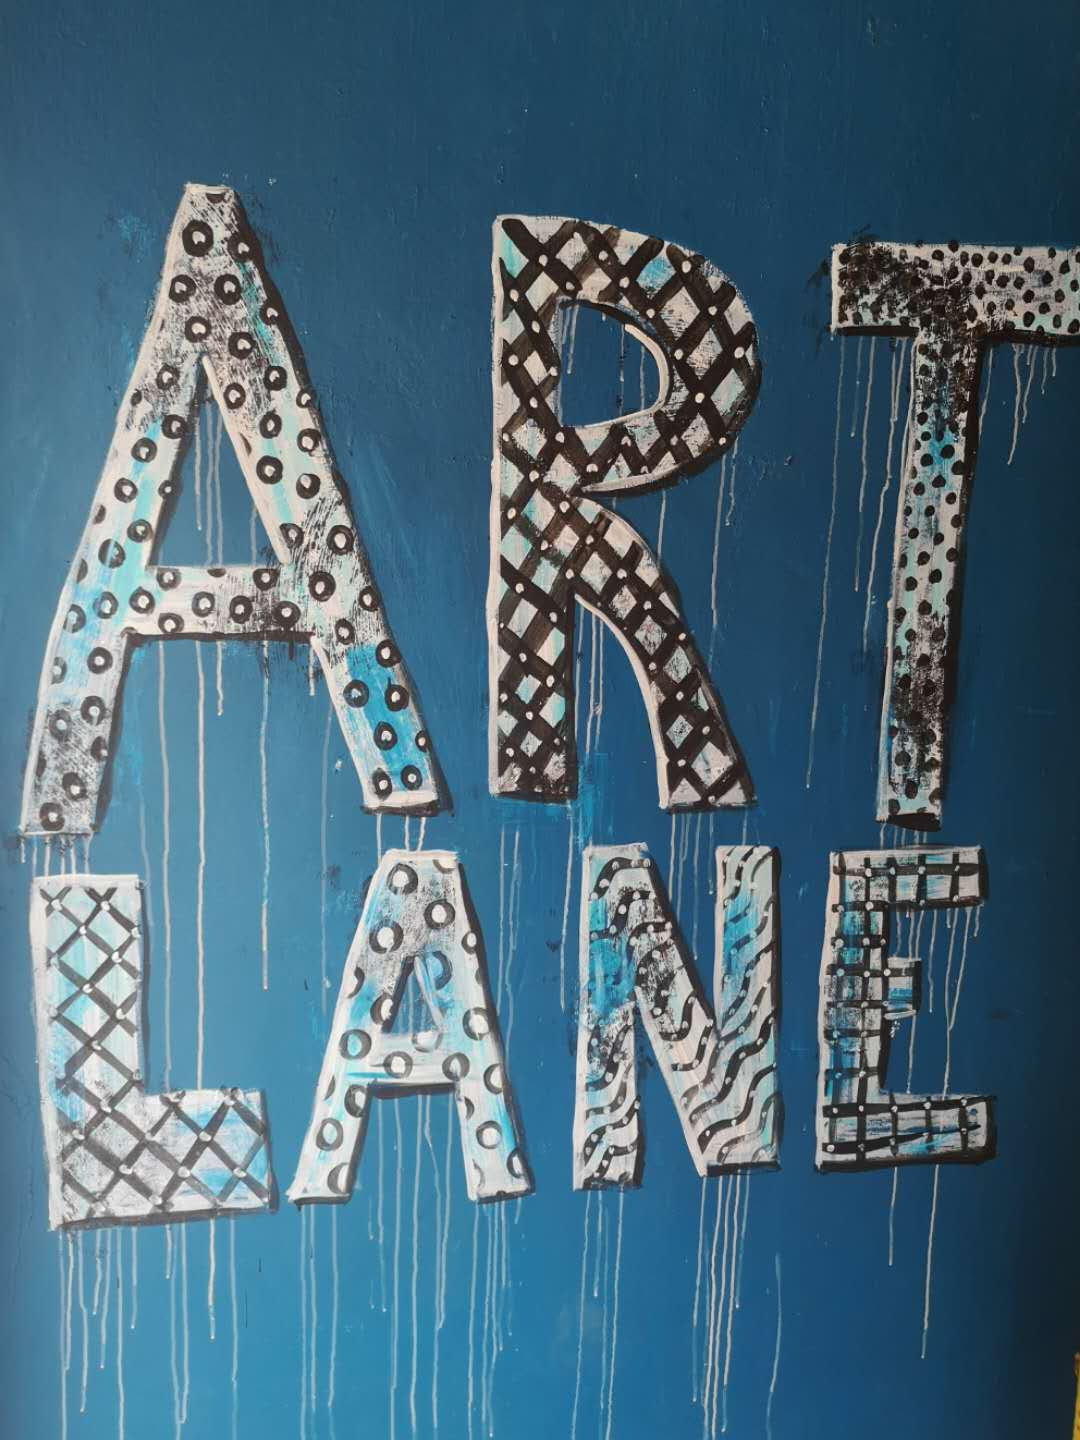 Blue background with the words Art Lane painted on it